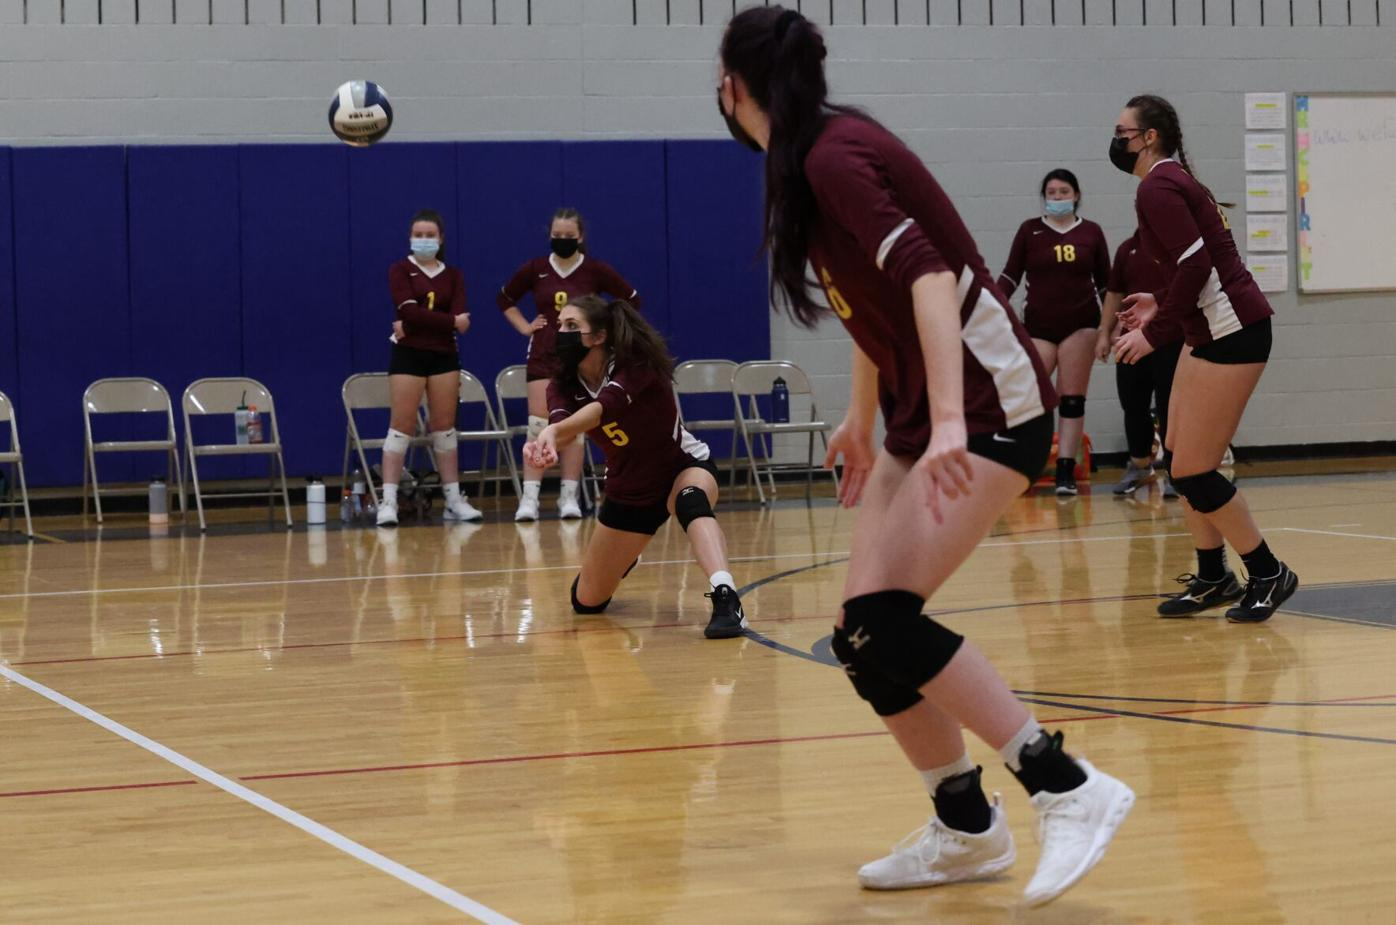 camryn o'dell gets low for a dig